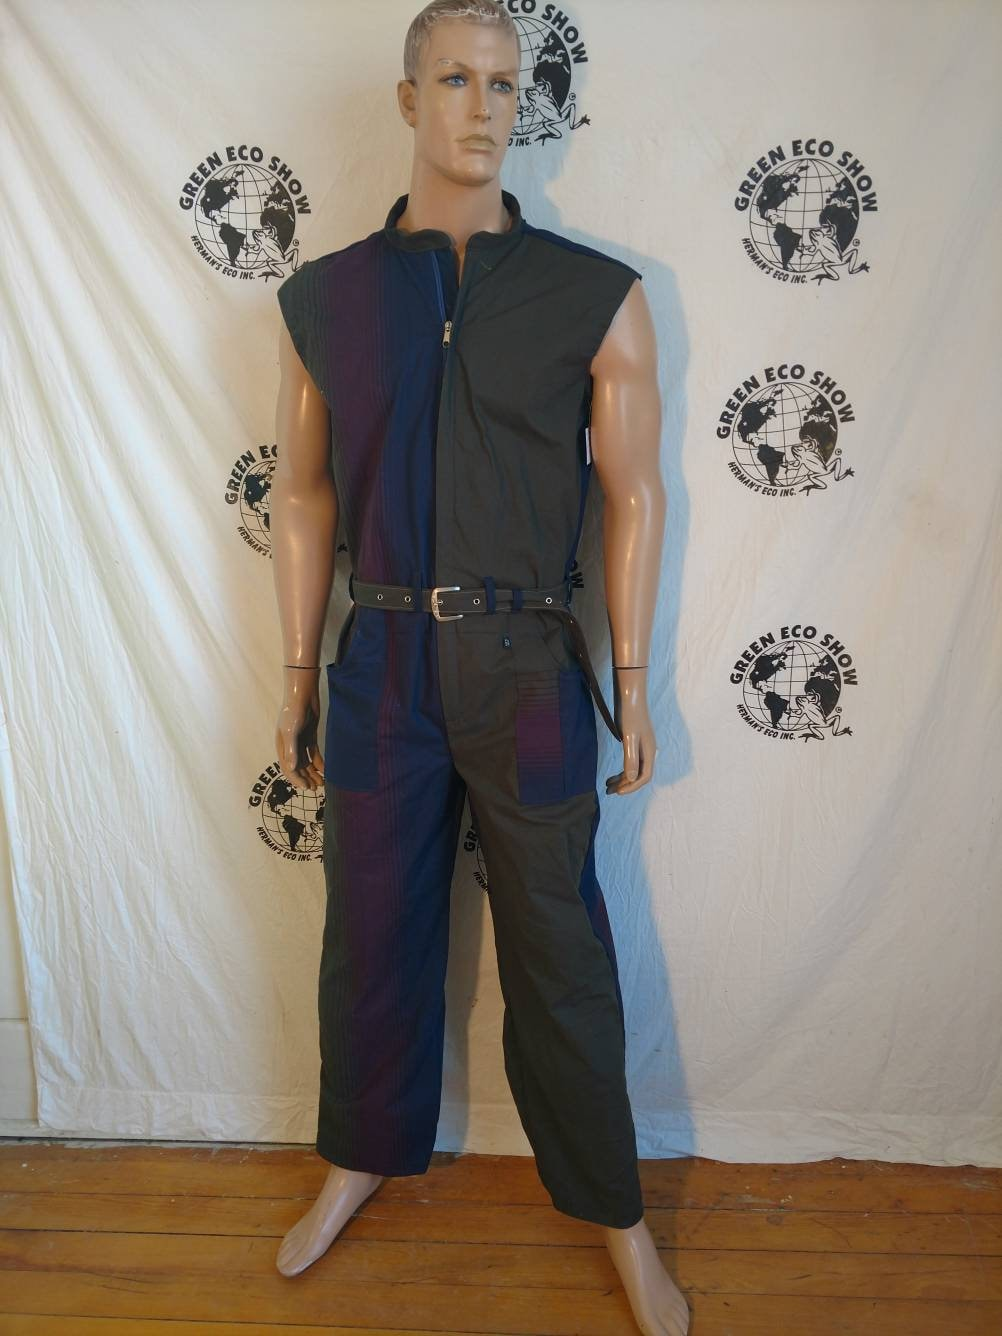 62763aa0dcd4 Mens Jumpsuit Romper Herman s Eco made in USA XL x 29